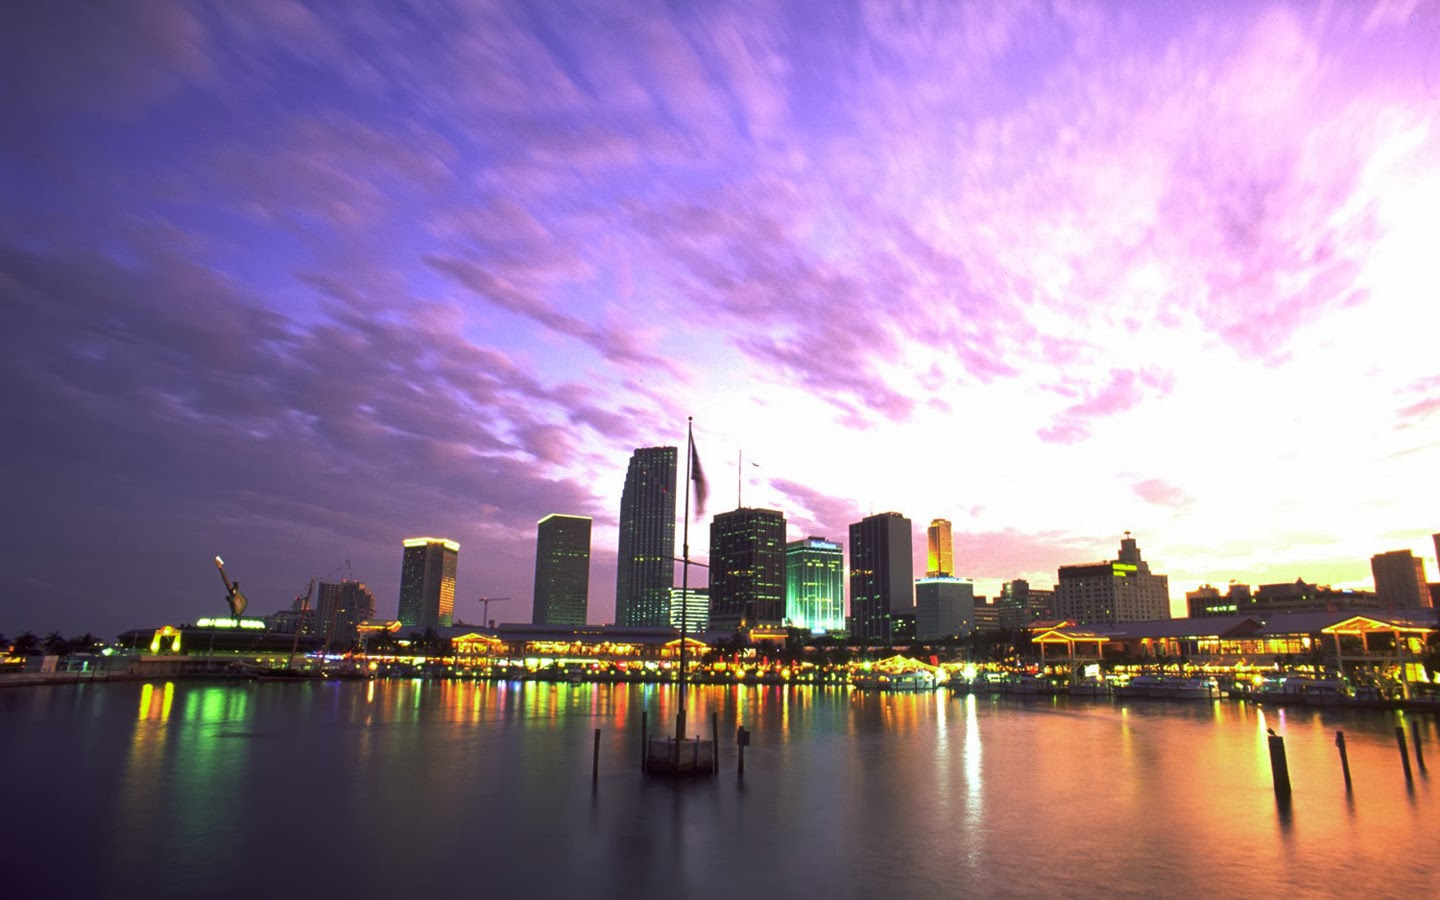 Download Miami Sunset Wallpaper Gallery